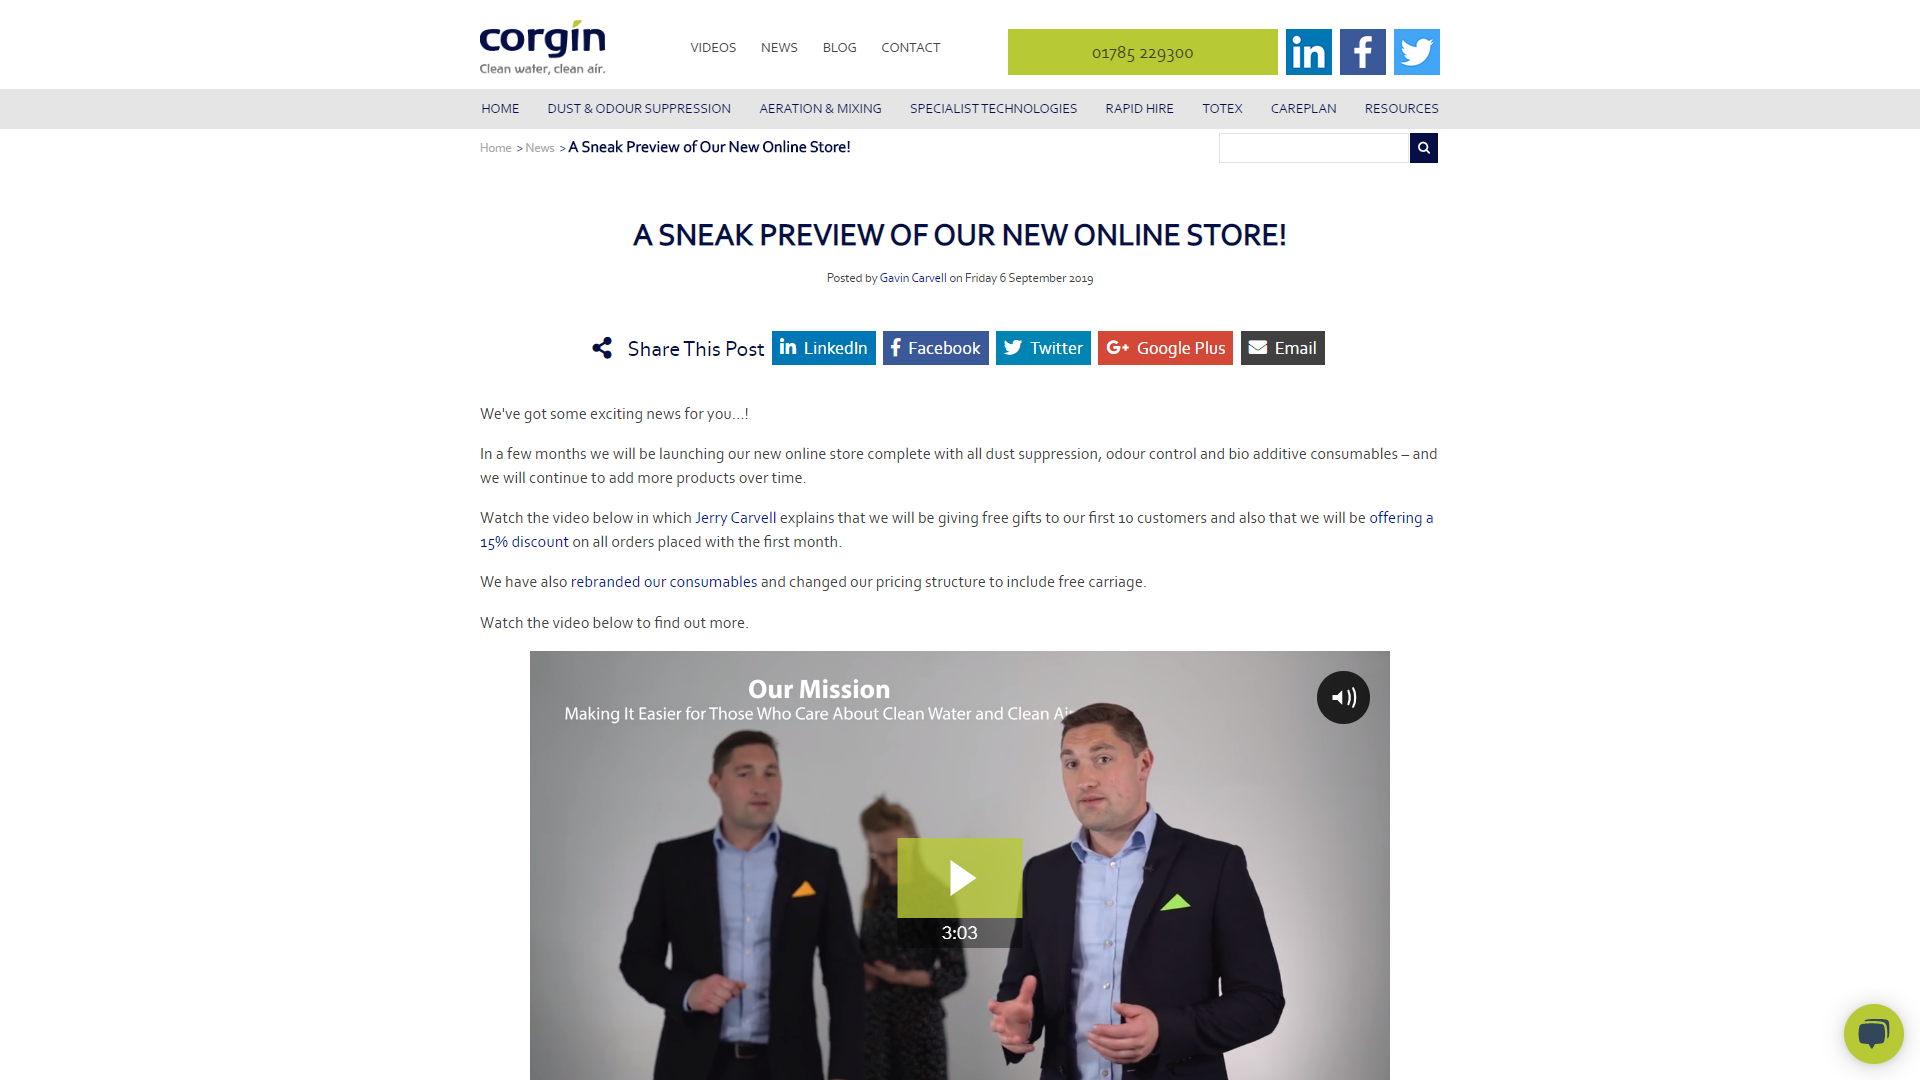 www.corgin.co.uk_news_a-sneak-preview-of-our-new-online-store(1920x1080)